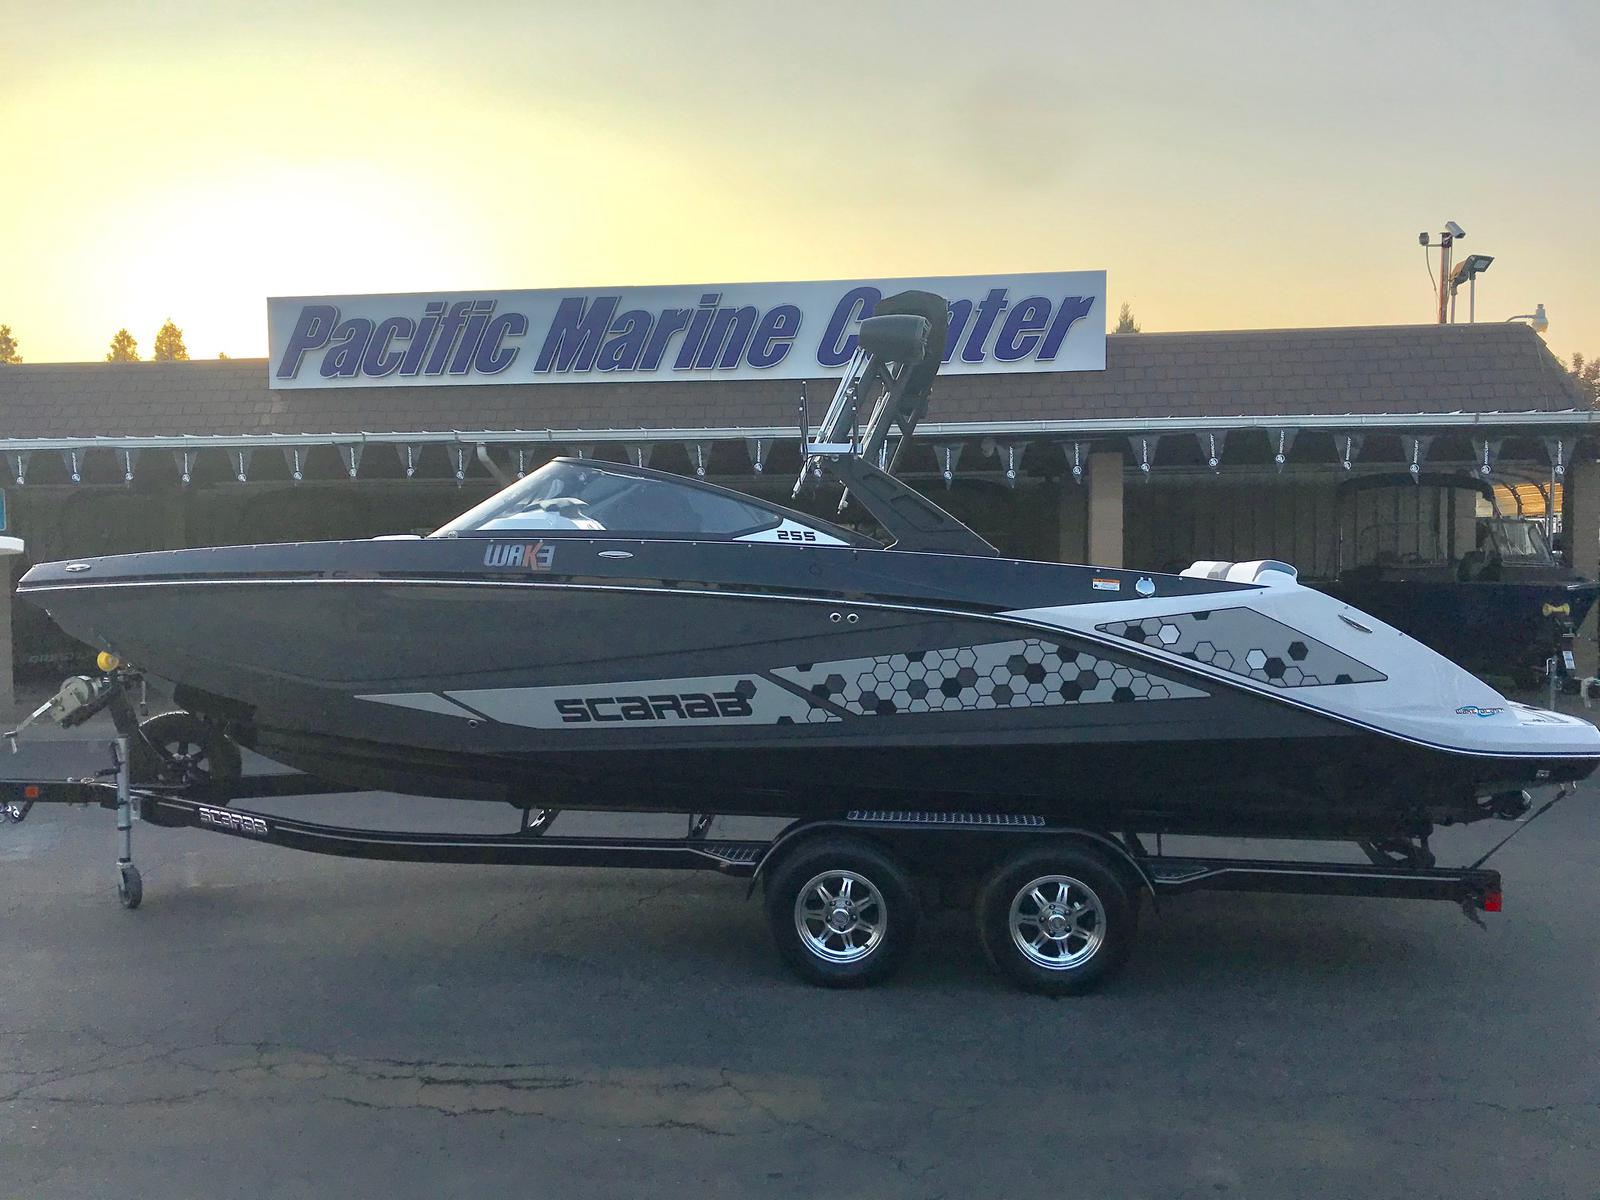 Scarab 255 ID w/ twin 300 Rotax engines - 600HP WAKE Edition